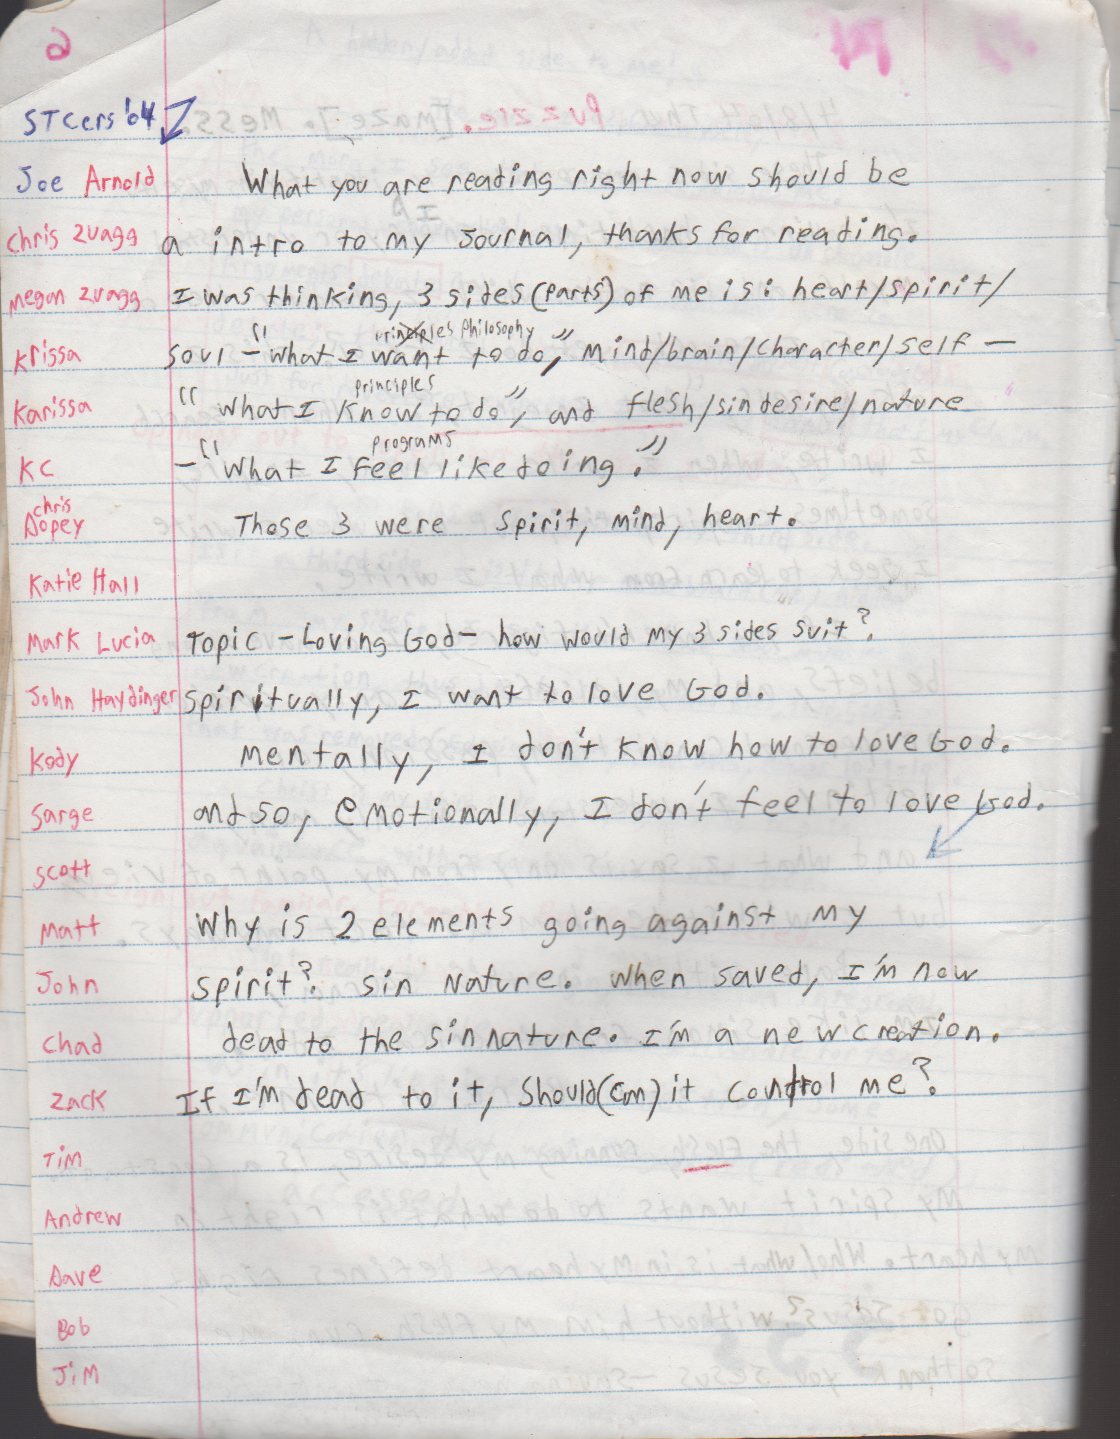 2004-02-11 - Wednesday - Joey Journal - Transition from high school to college that fall, intro pages-6.png